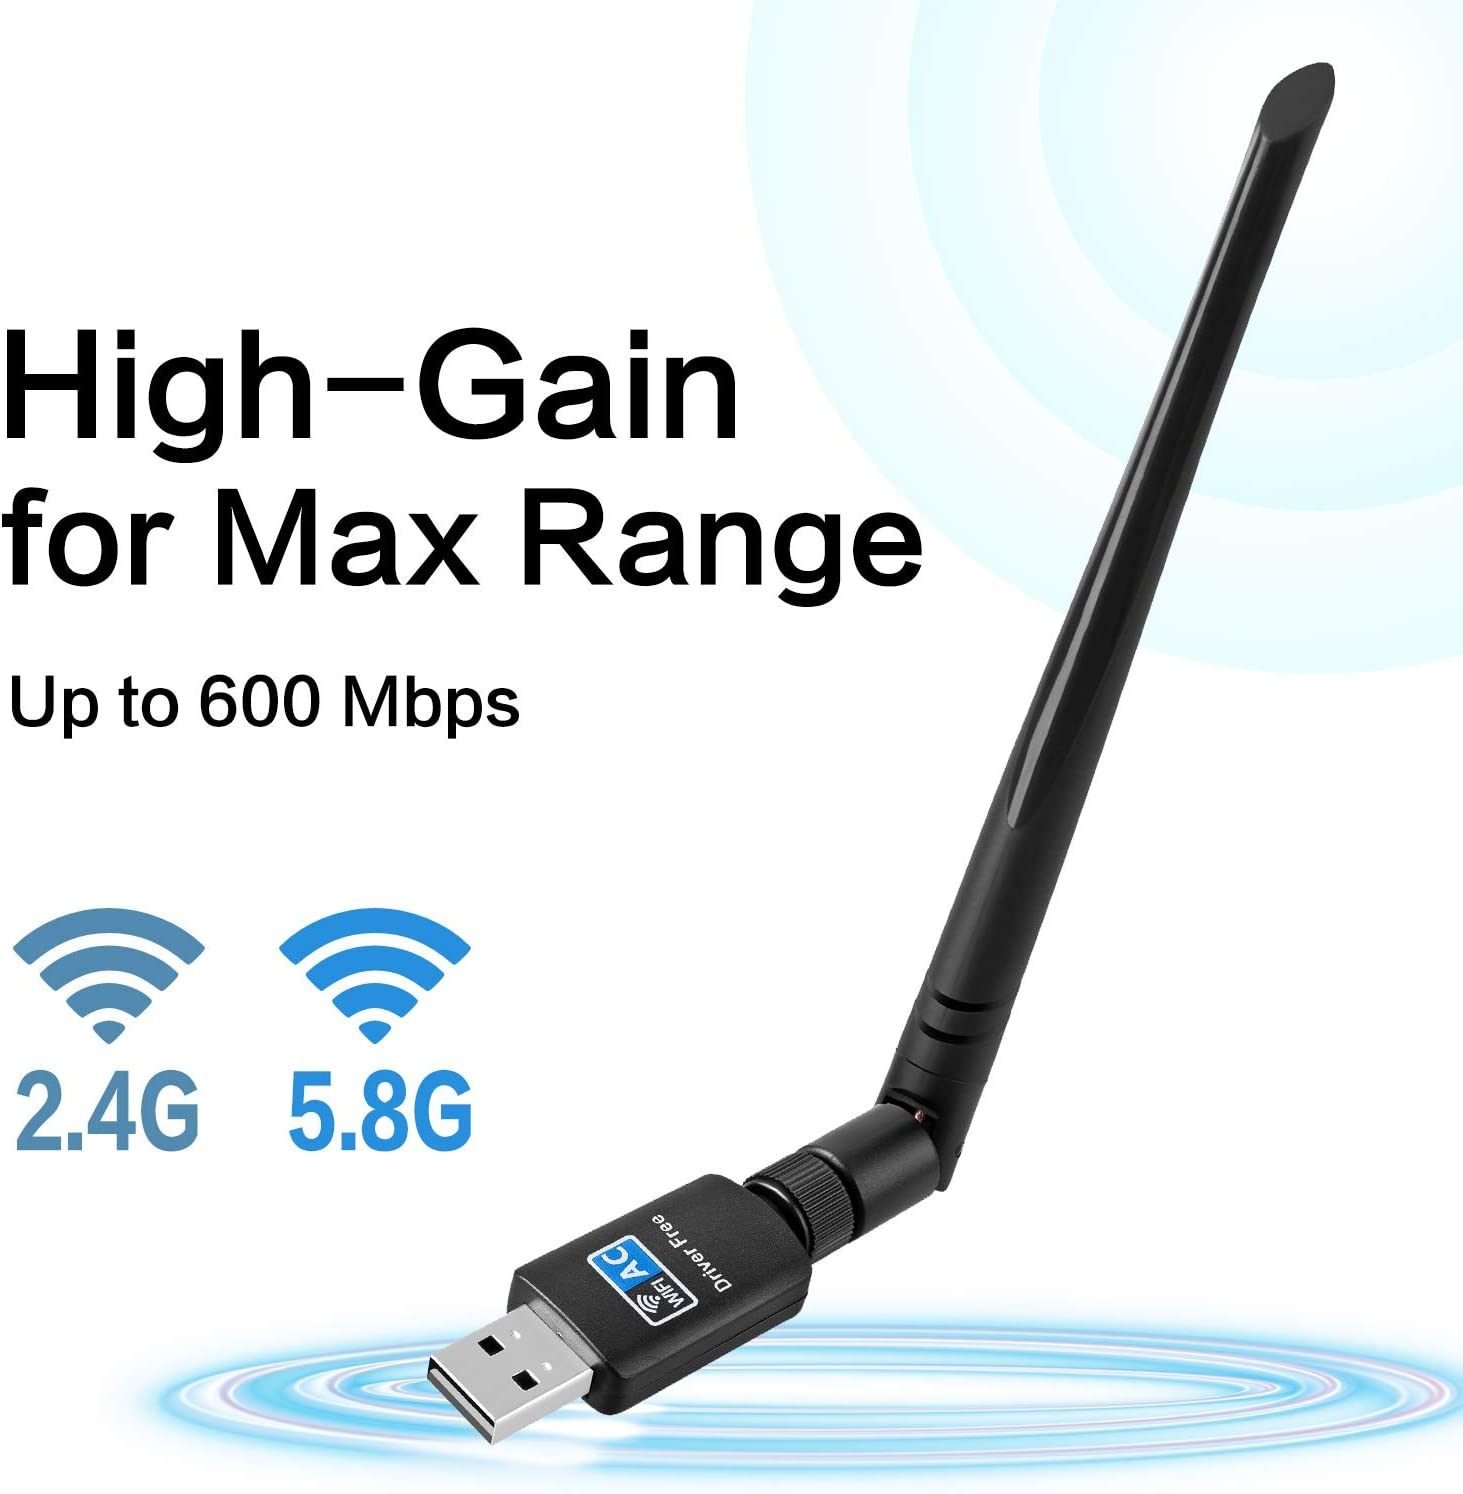 WiFi Adapter for PC 600Mbps,802.11ac USB Wireless Network Adapter with Dual Band 2.4GHz//5.8GHz 5dBi High Gain Antenna for Desktop Compatible with Windows 10//8//7//Vista//XP Mac OS